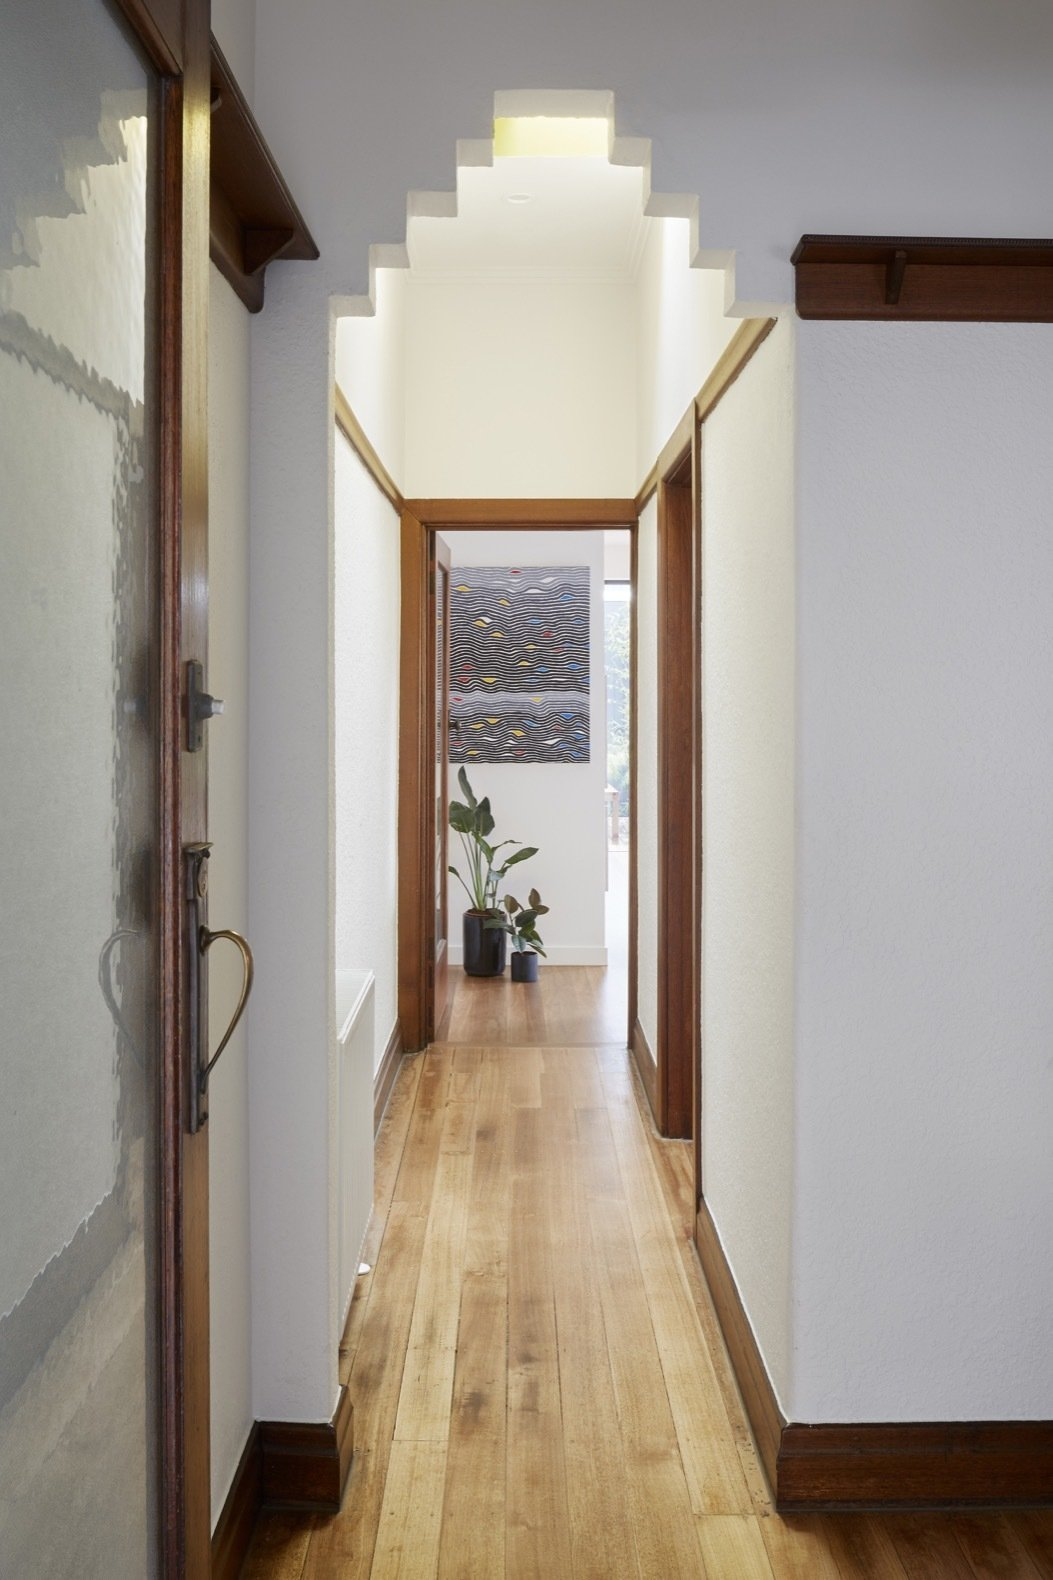 Hallway and Medium Hardwood Floor The original Art Deco style can be seen in the interior arch openings.  Photo 10 of 16 in An Art Deco Dwelling Receives a Sleek, Contemporary Extension